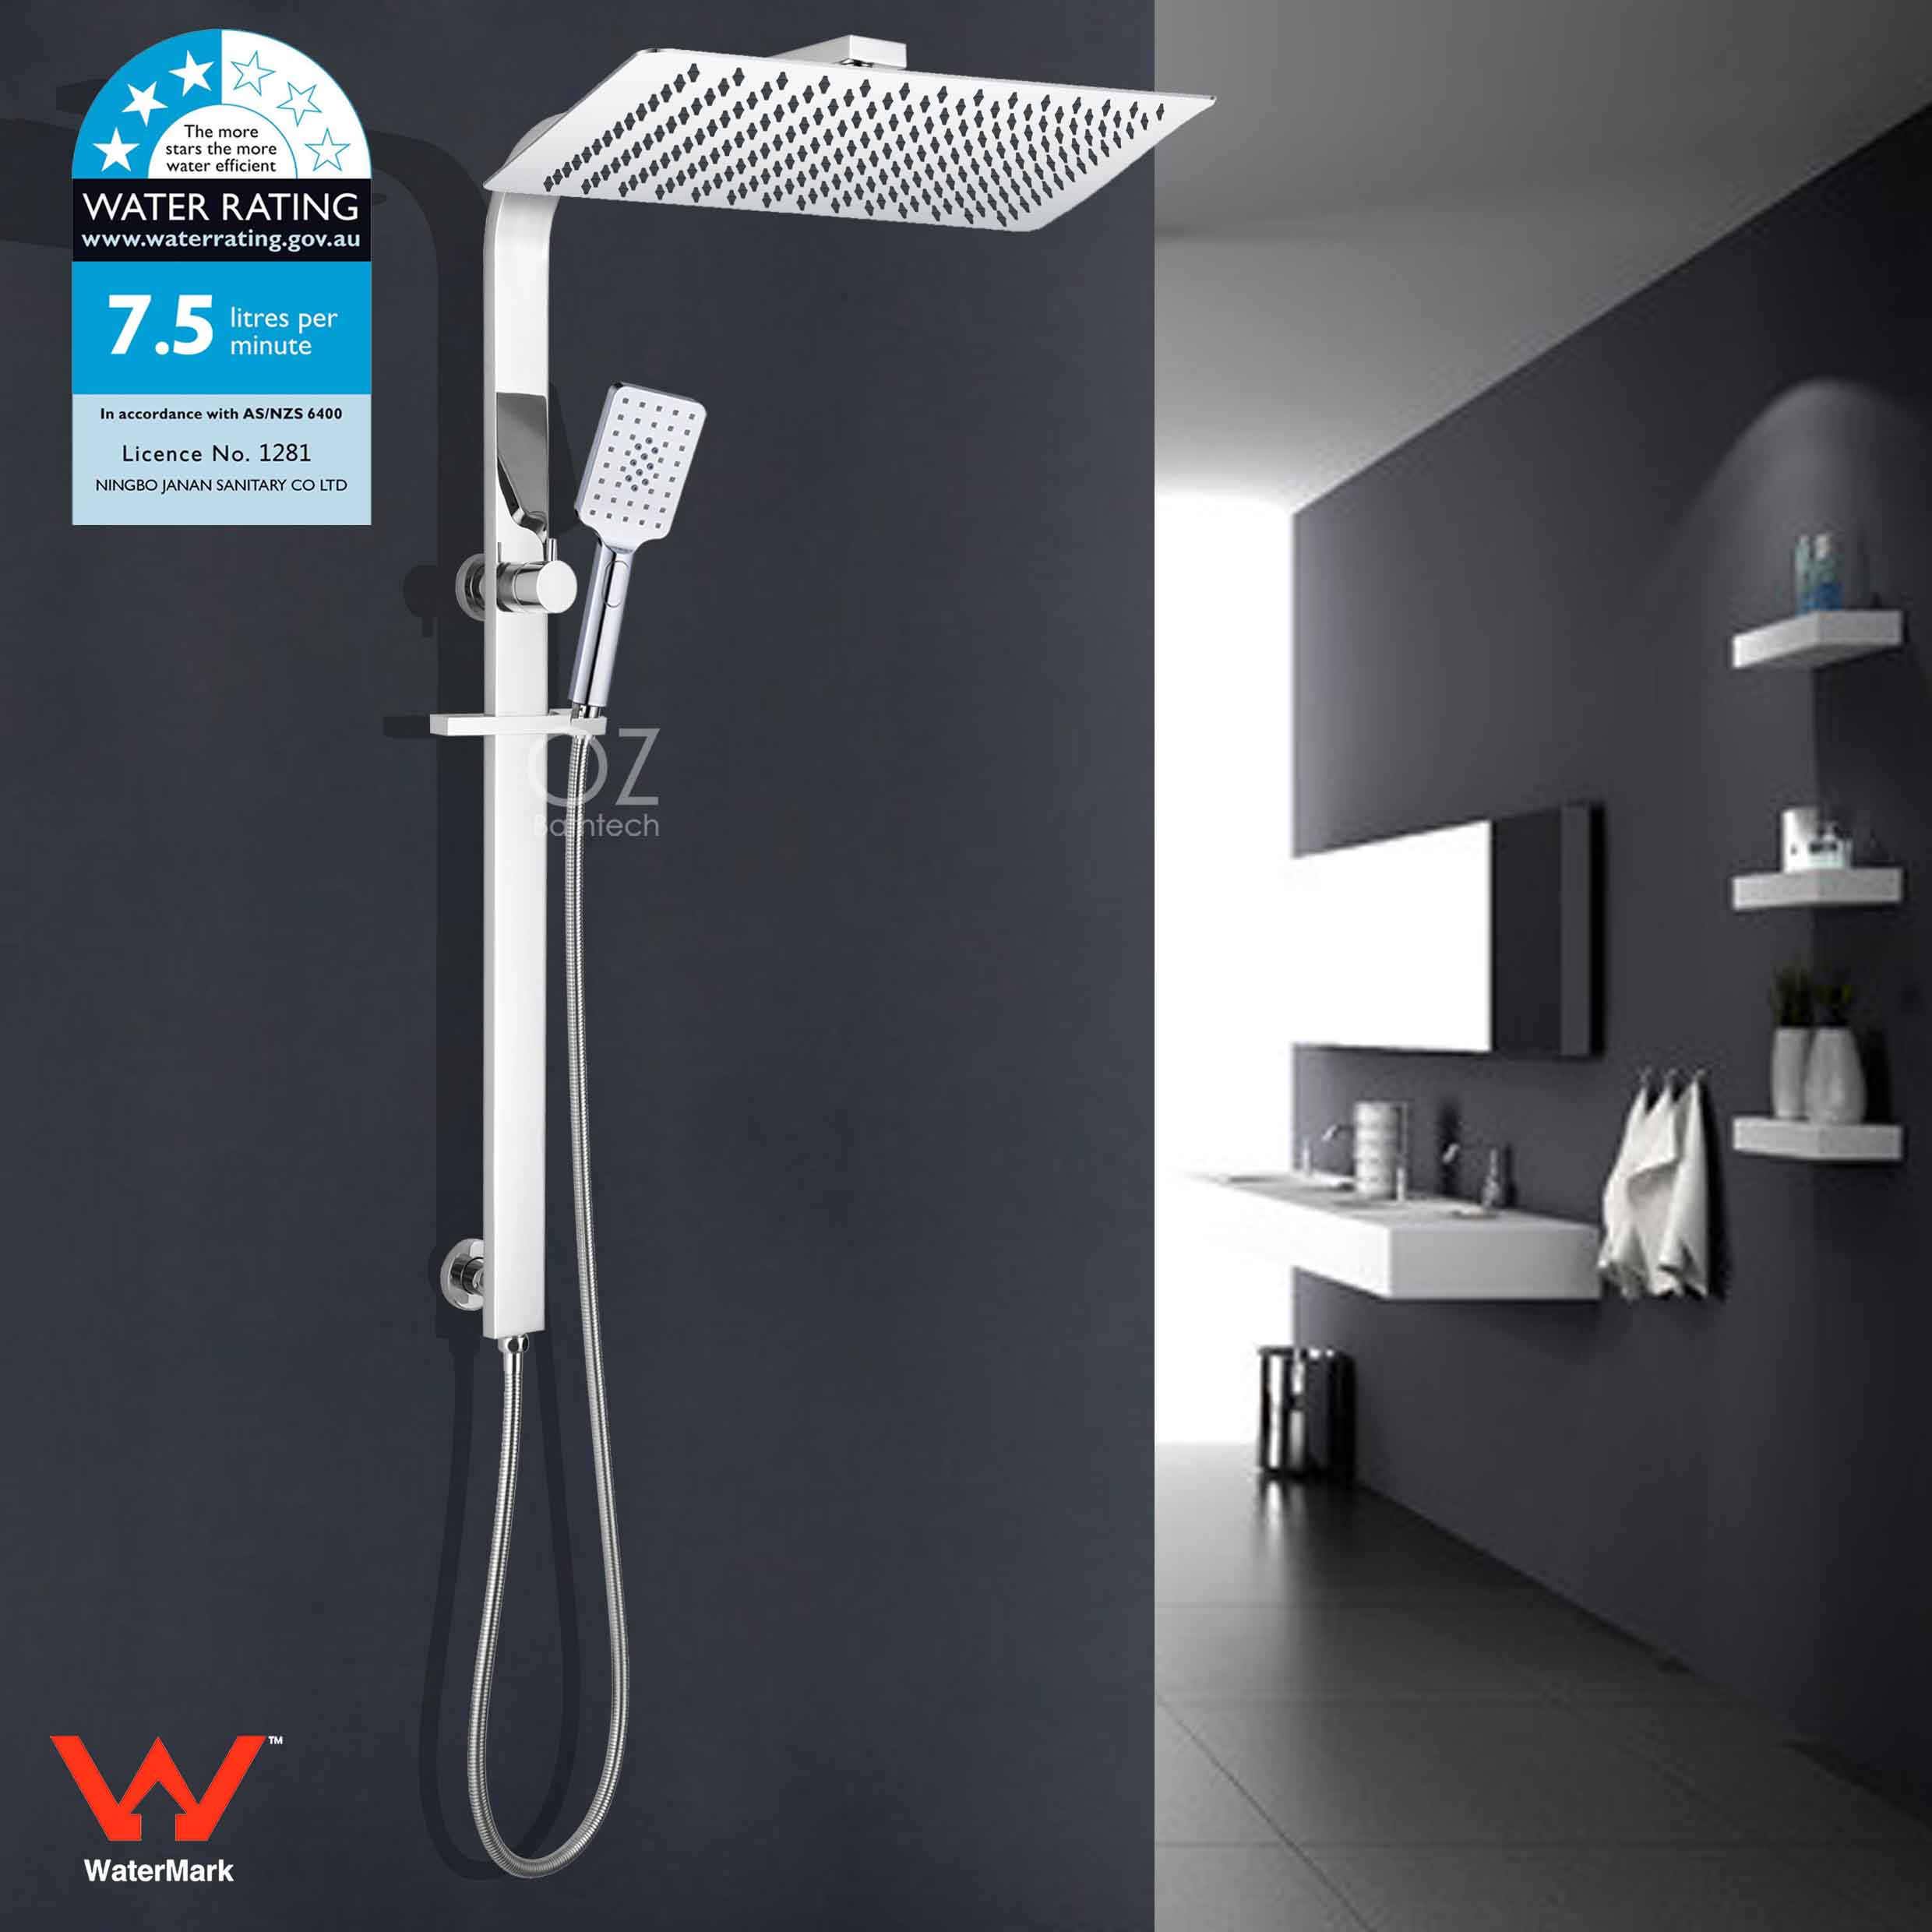 Details About Wels 16 Inch Luxury Rainfall Shower Head Hand Held Rail Kit Arm 2in1 Set Chrome